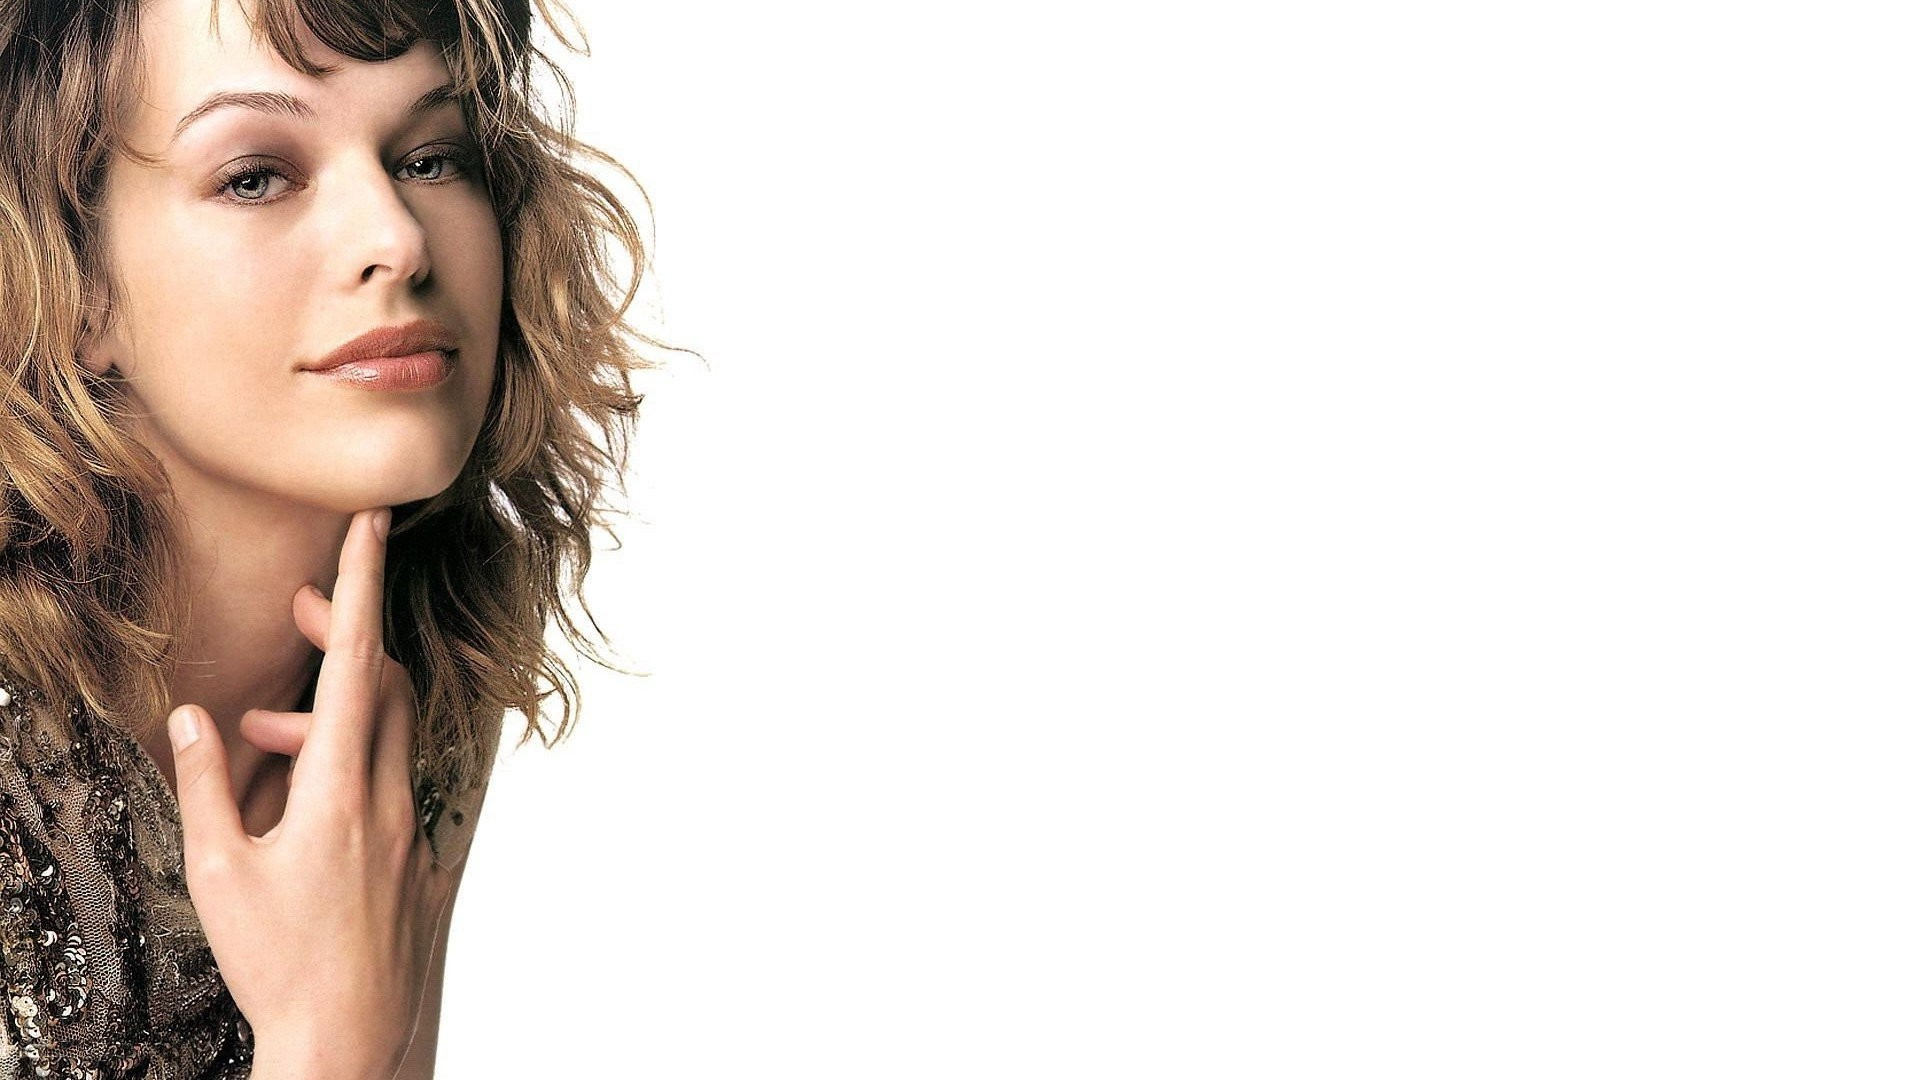 PreviousNext. Previous Image Next Image. milla jovovich hd wallpapers  wallpaper cave